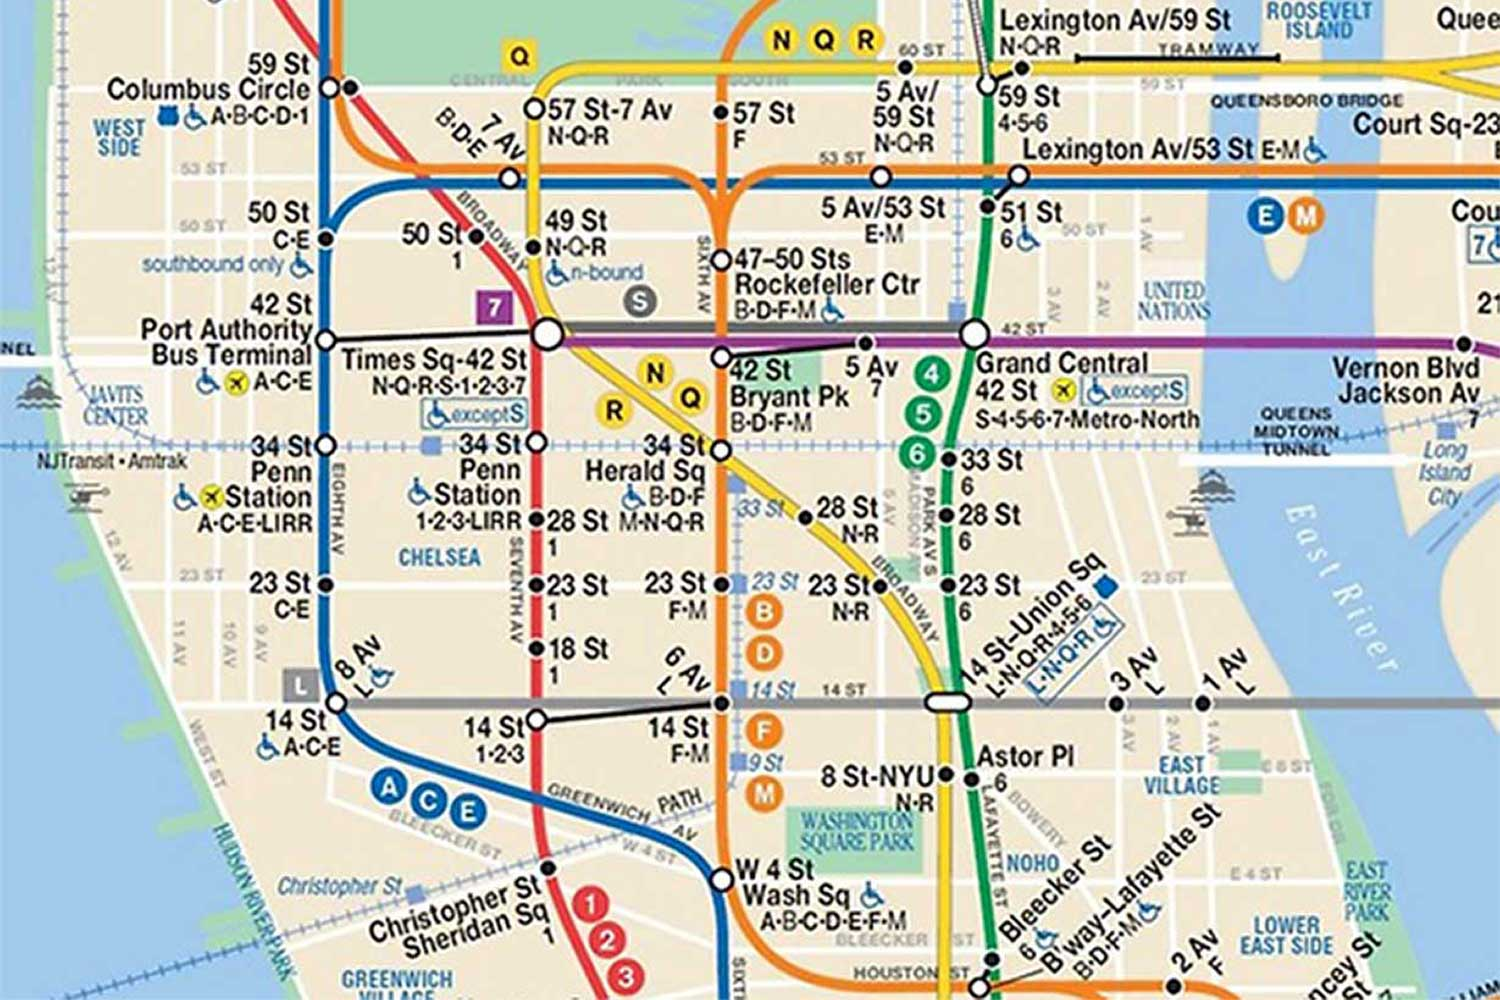 nyc-subway-guide-for-tourists